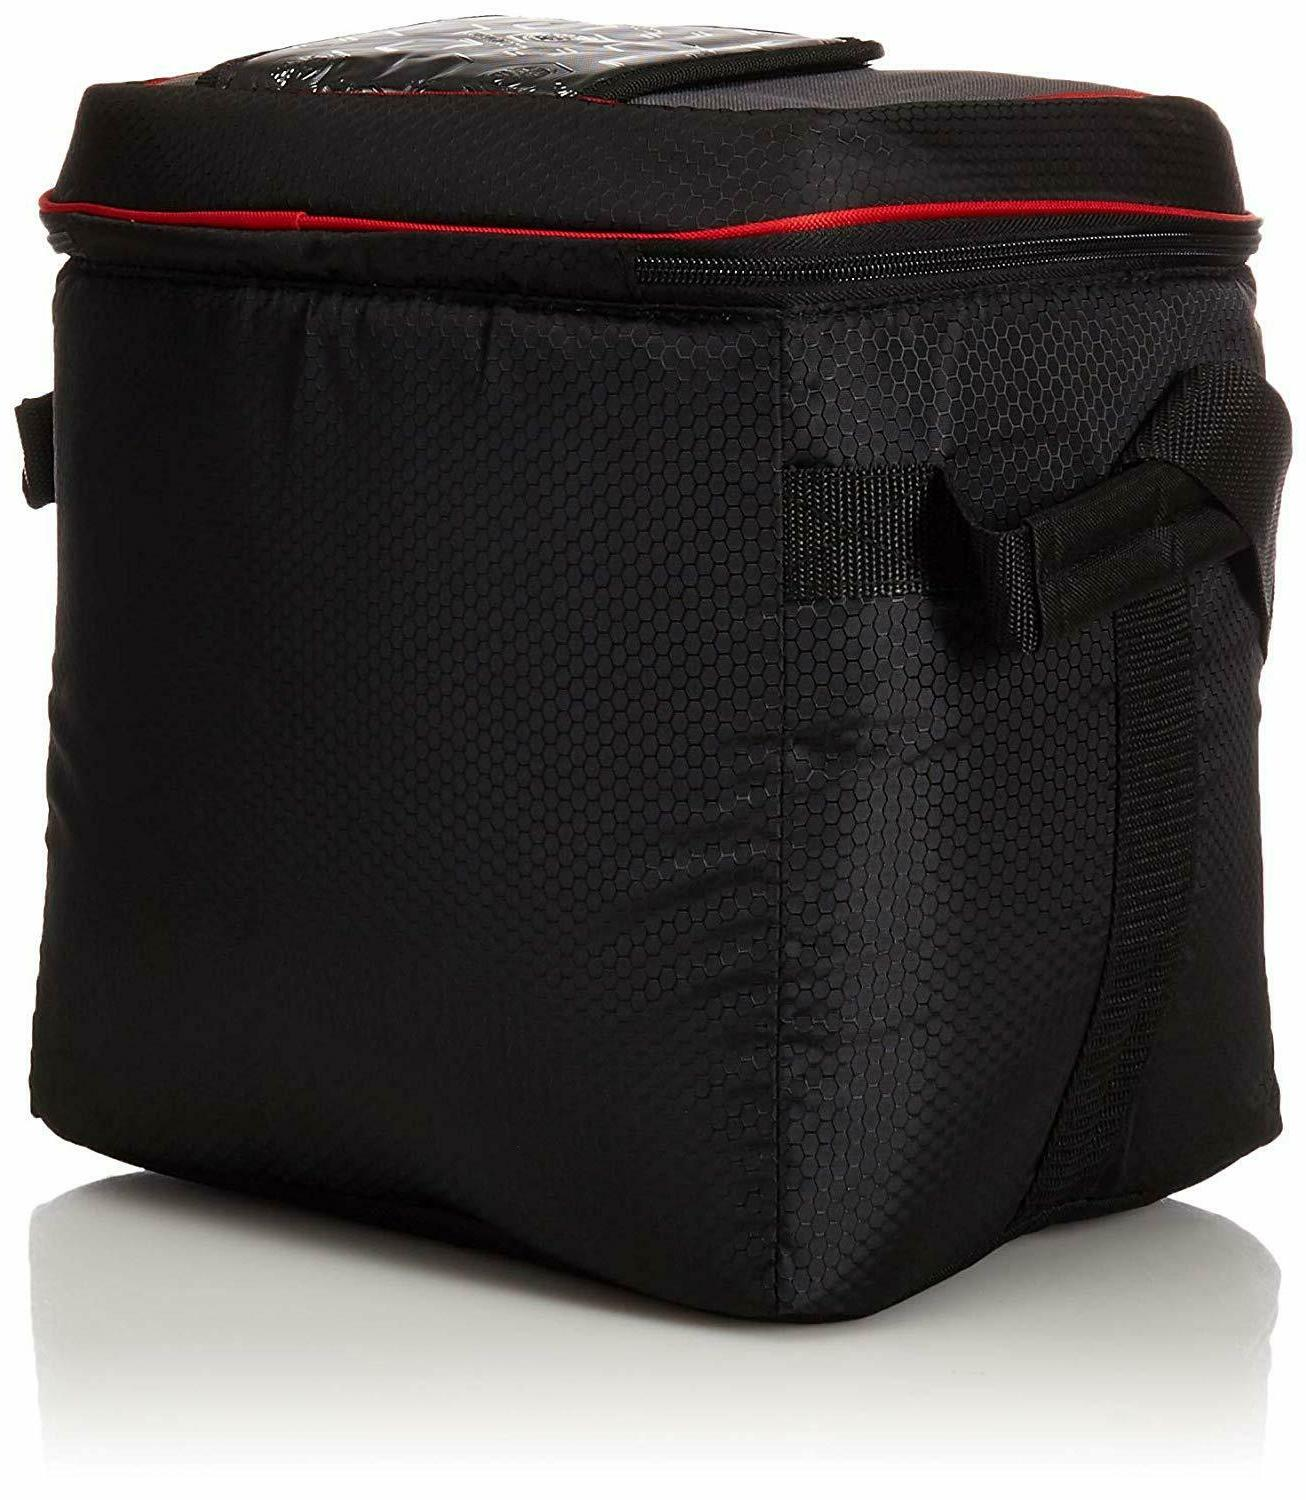 Coleman Soft Cooler Bag Keeps Ice Up to 24 Hours  up to 90°